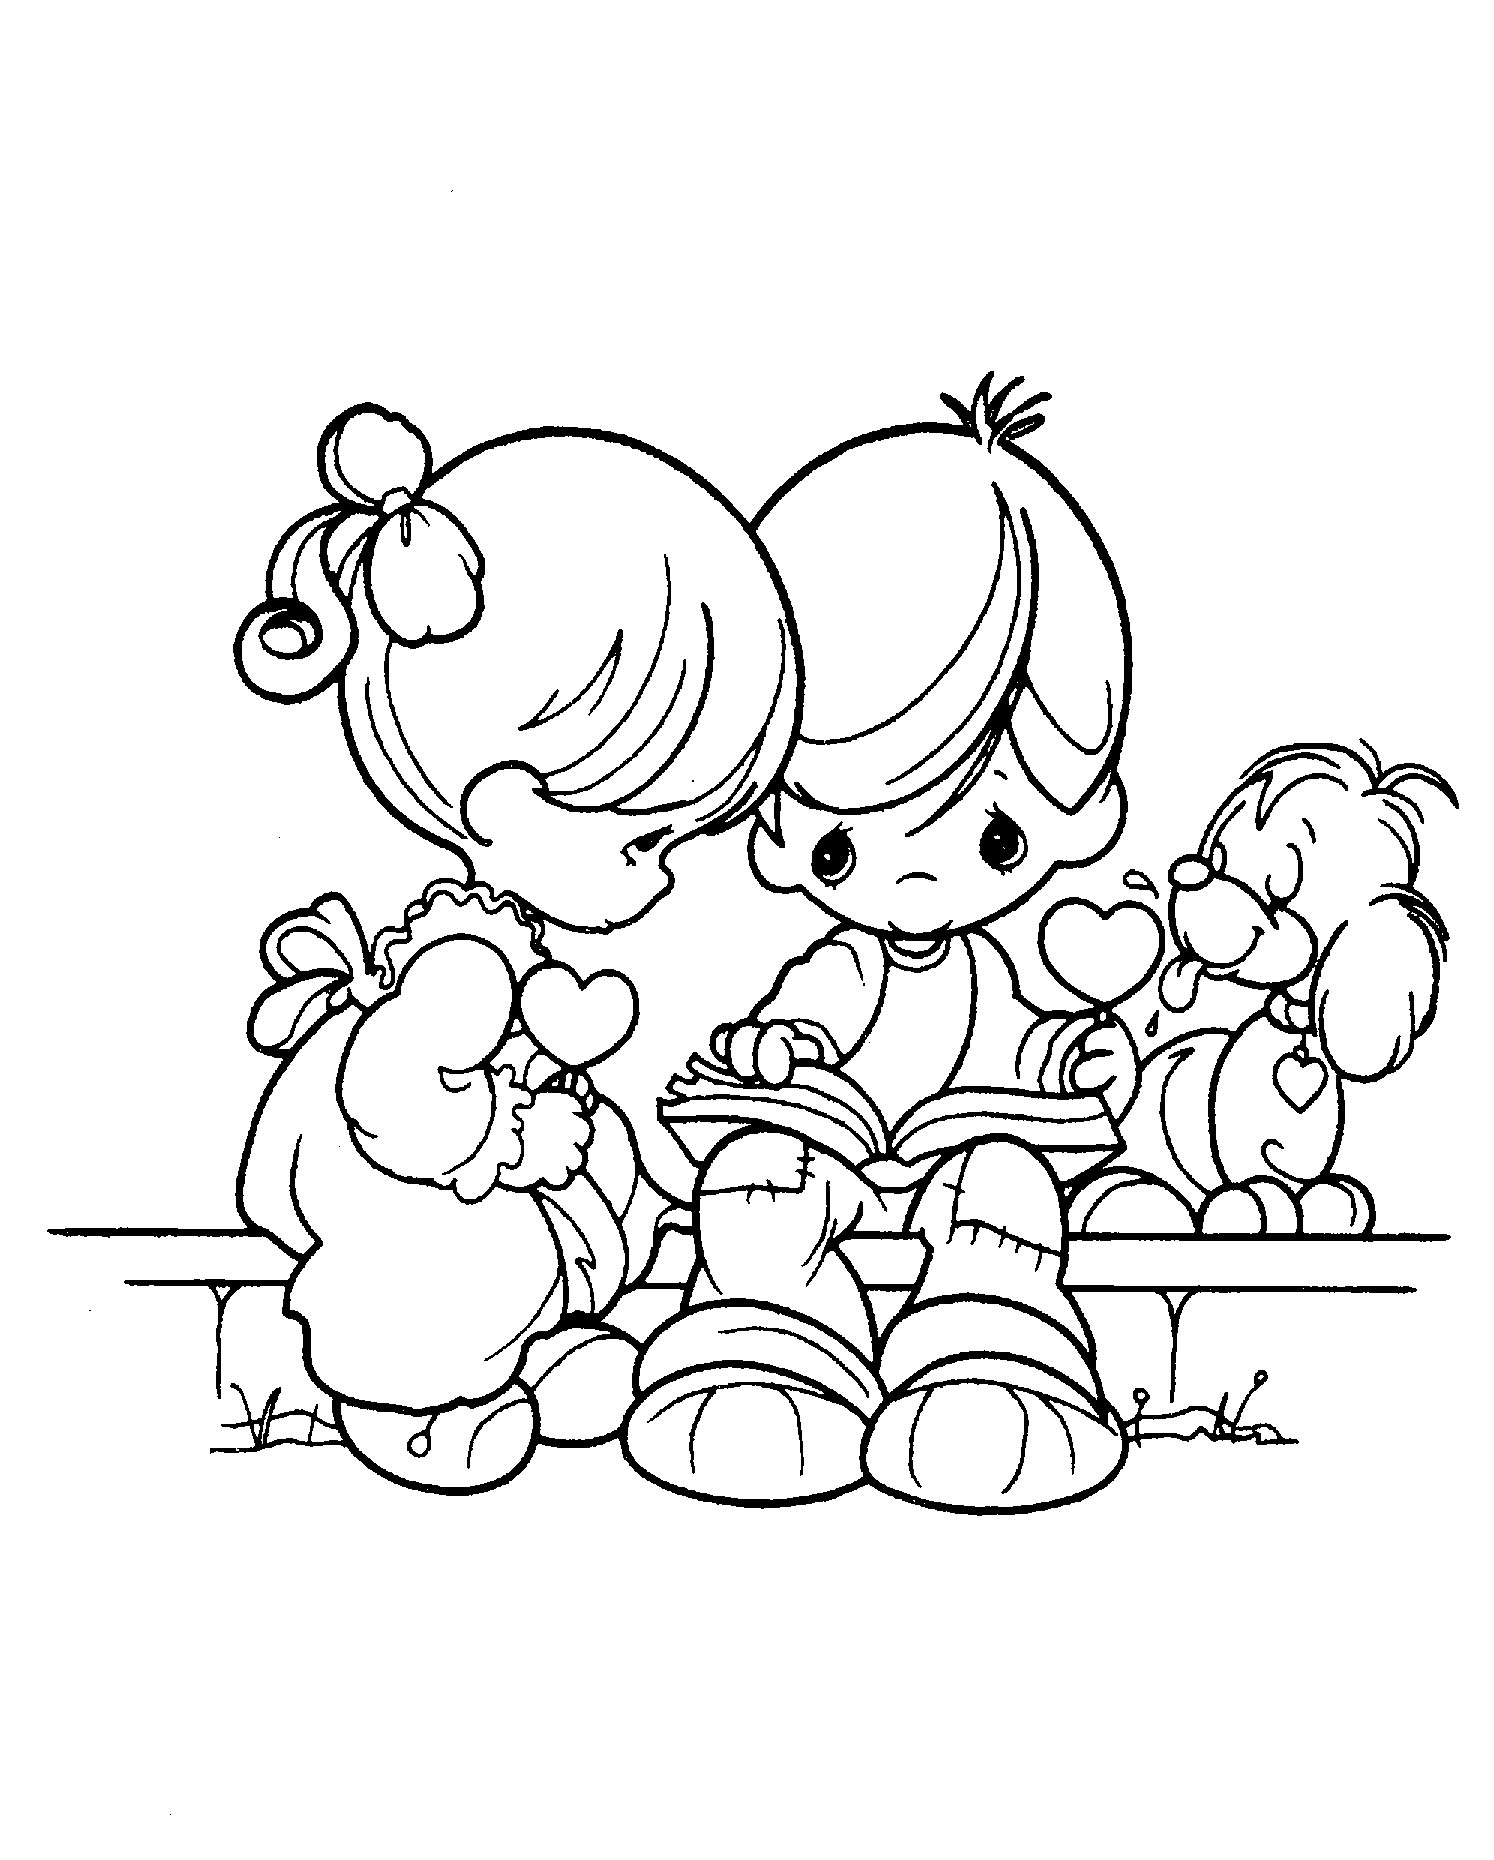 Precious Moments Letters Coloring Pages Precious Moments Girl Coloring Pages At Getdrawings Free For